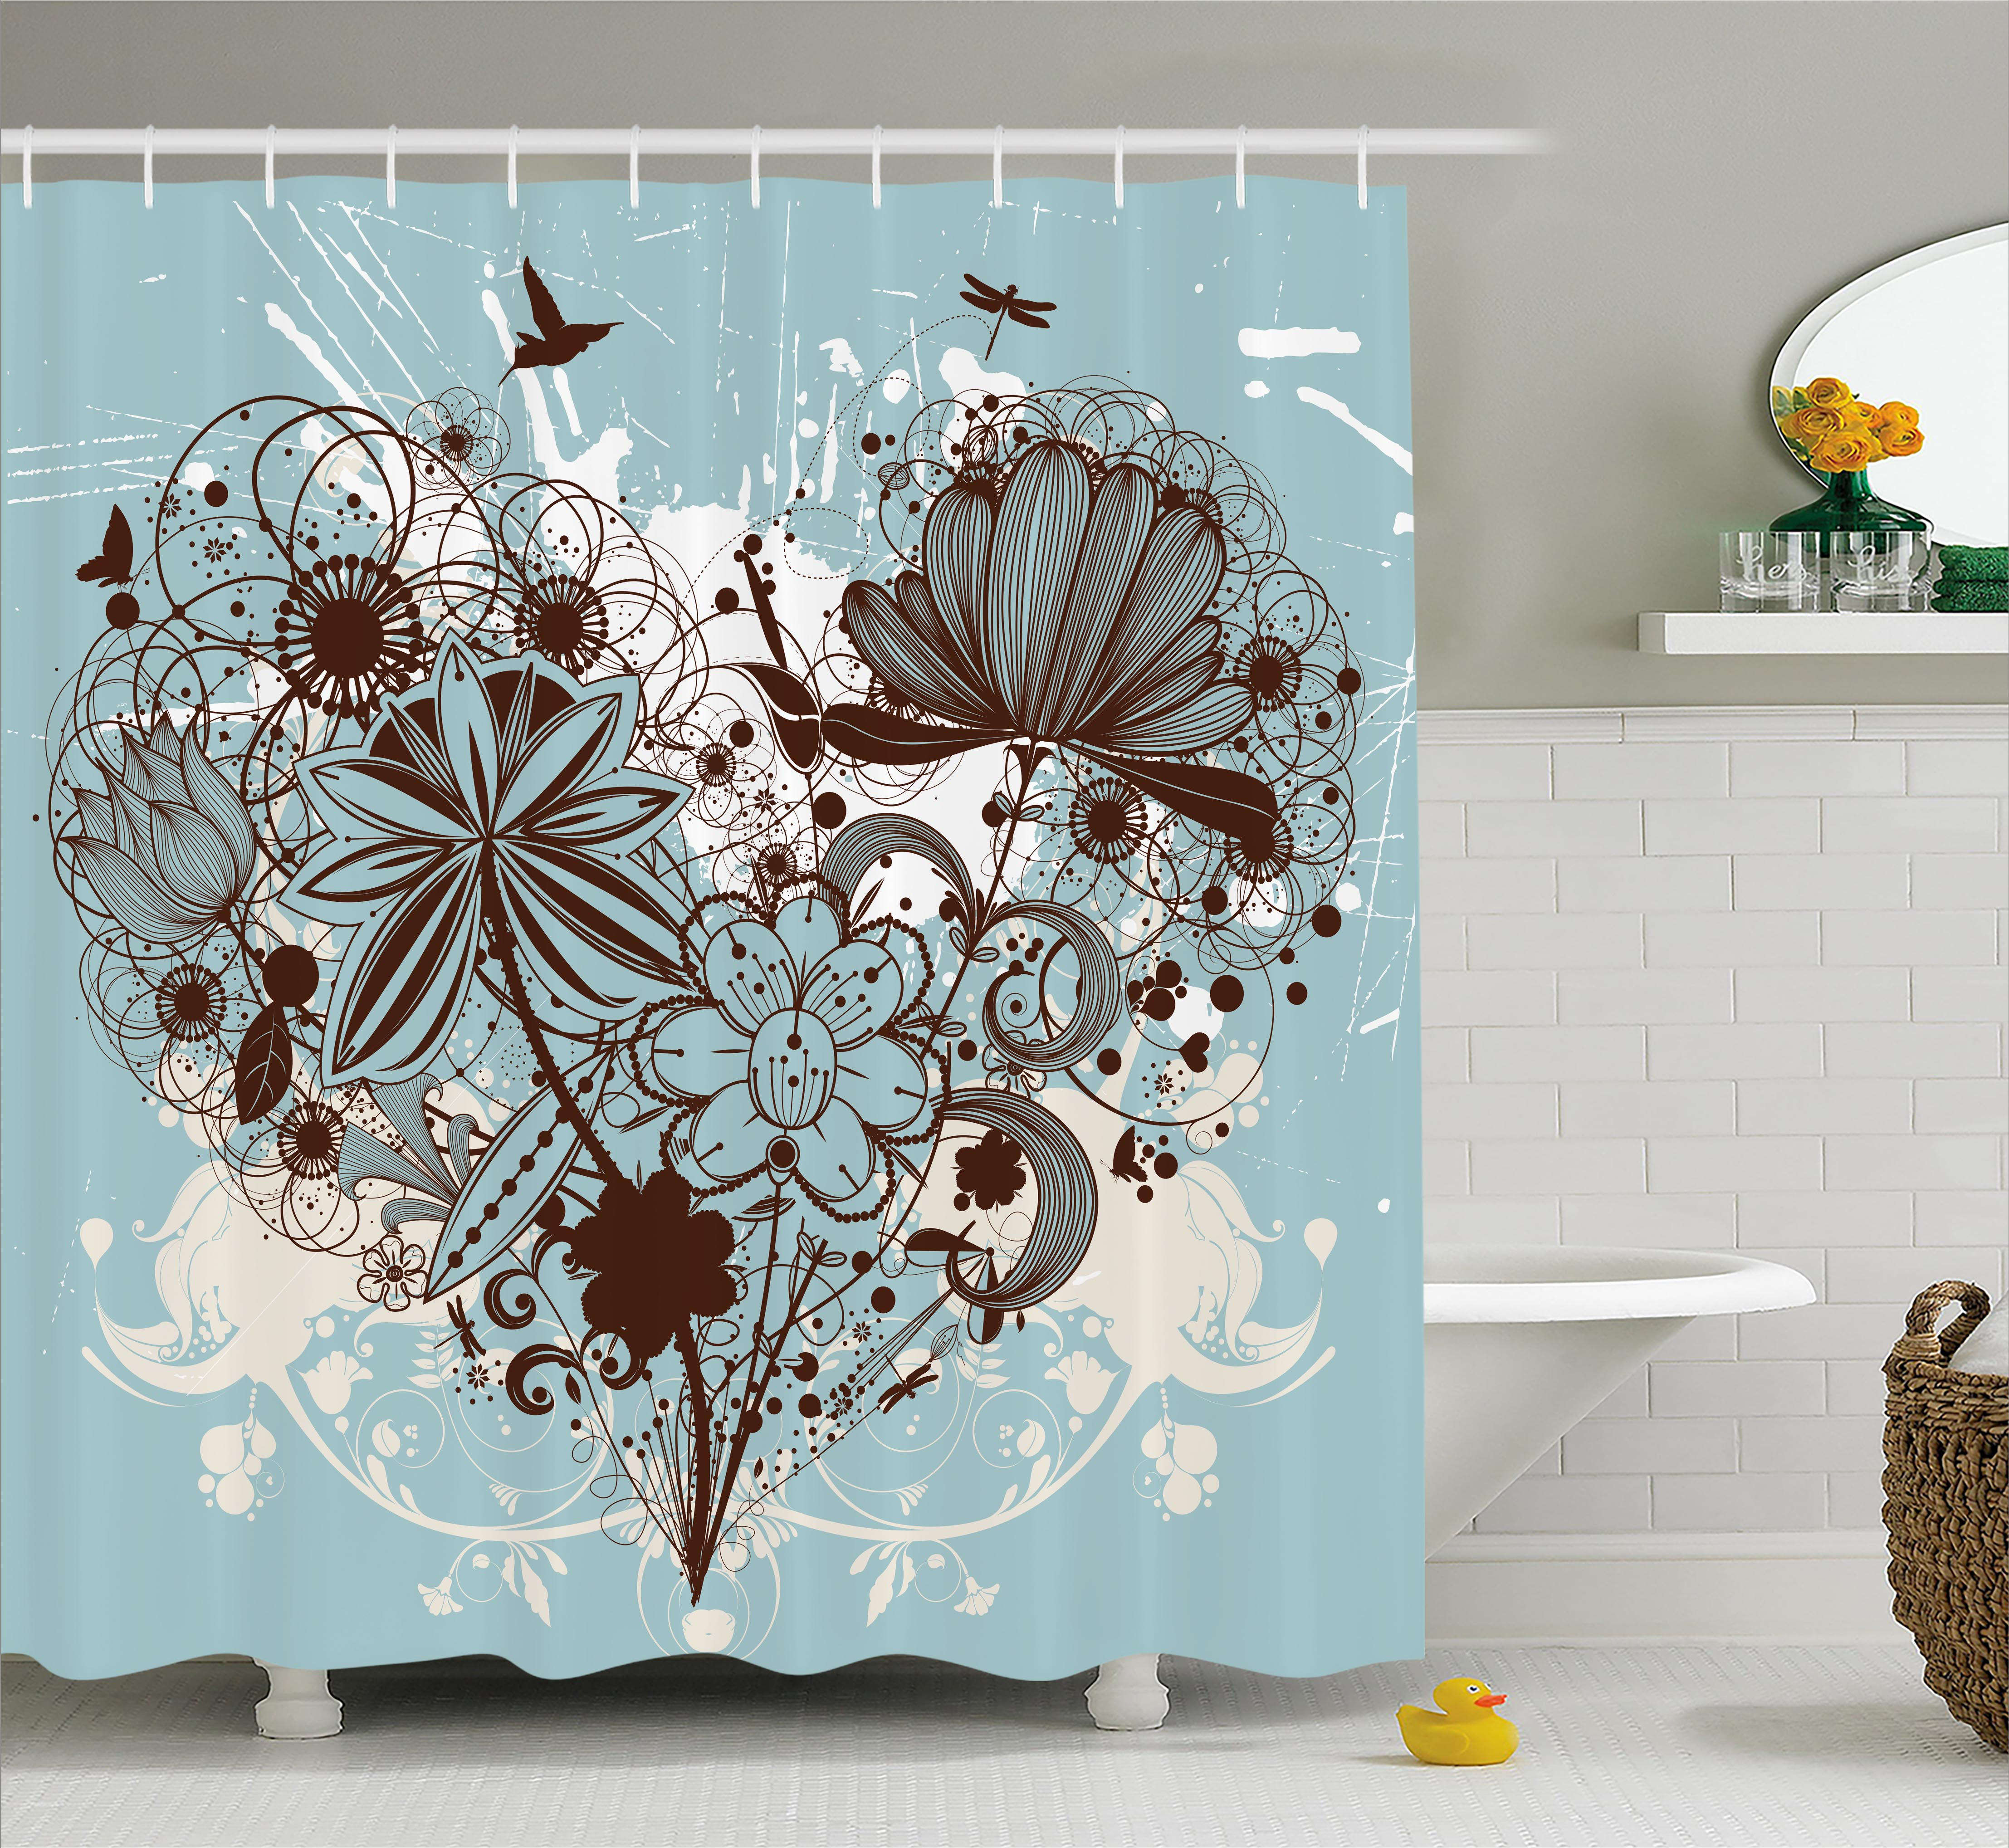 Grunge Shower Curtain, Murky Floral Dragonfly Background with Swirls and Petal Retro Graphic, Fabric Bathroom Set with Hooks, 69W X 84L Inches Extra Long, Light Blue Chestnut Brown, by Ambesonne